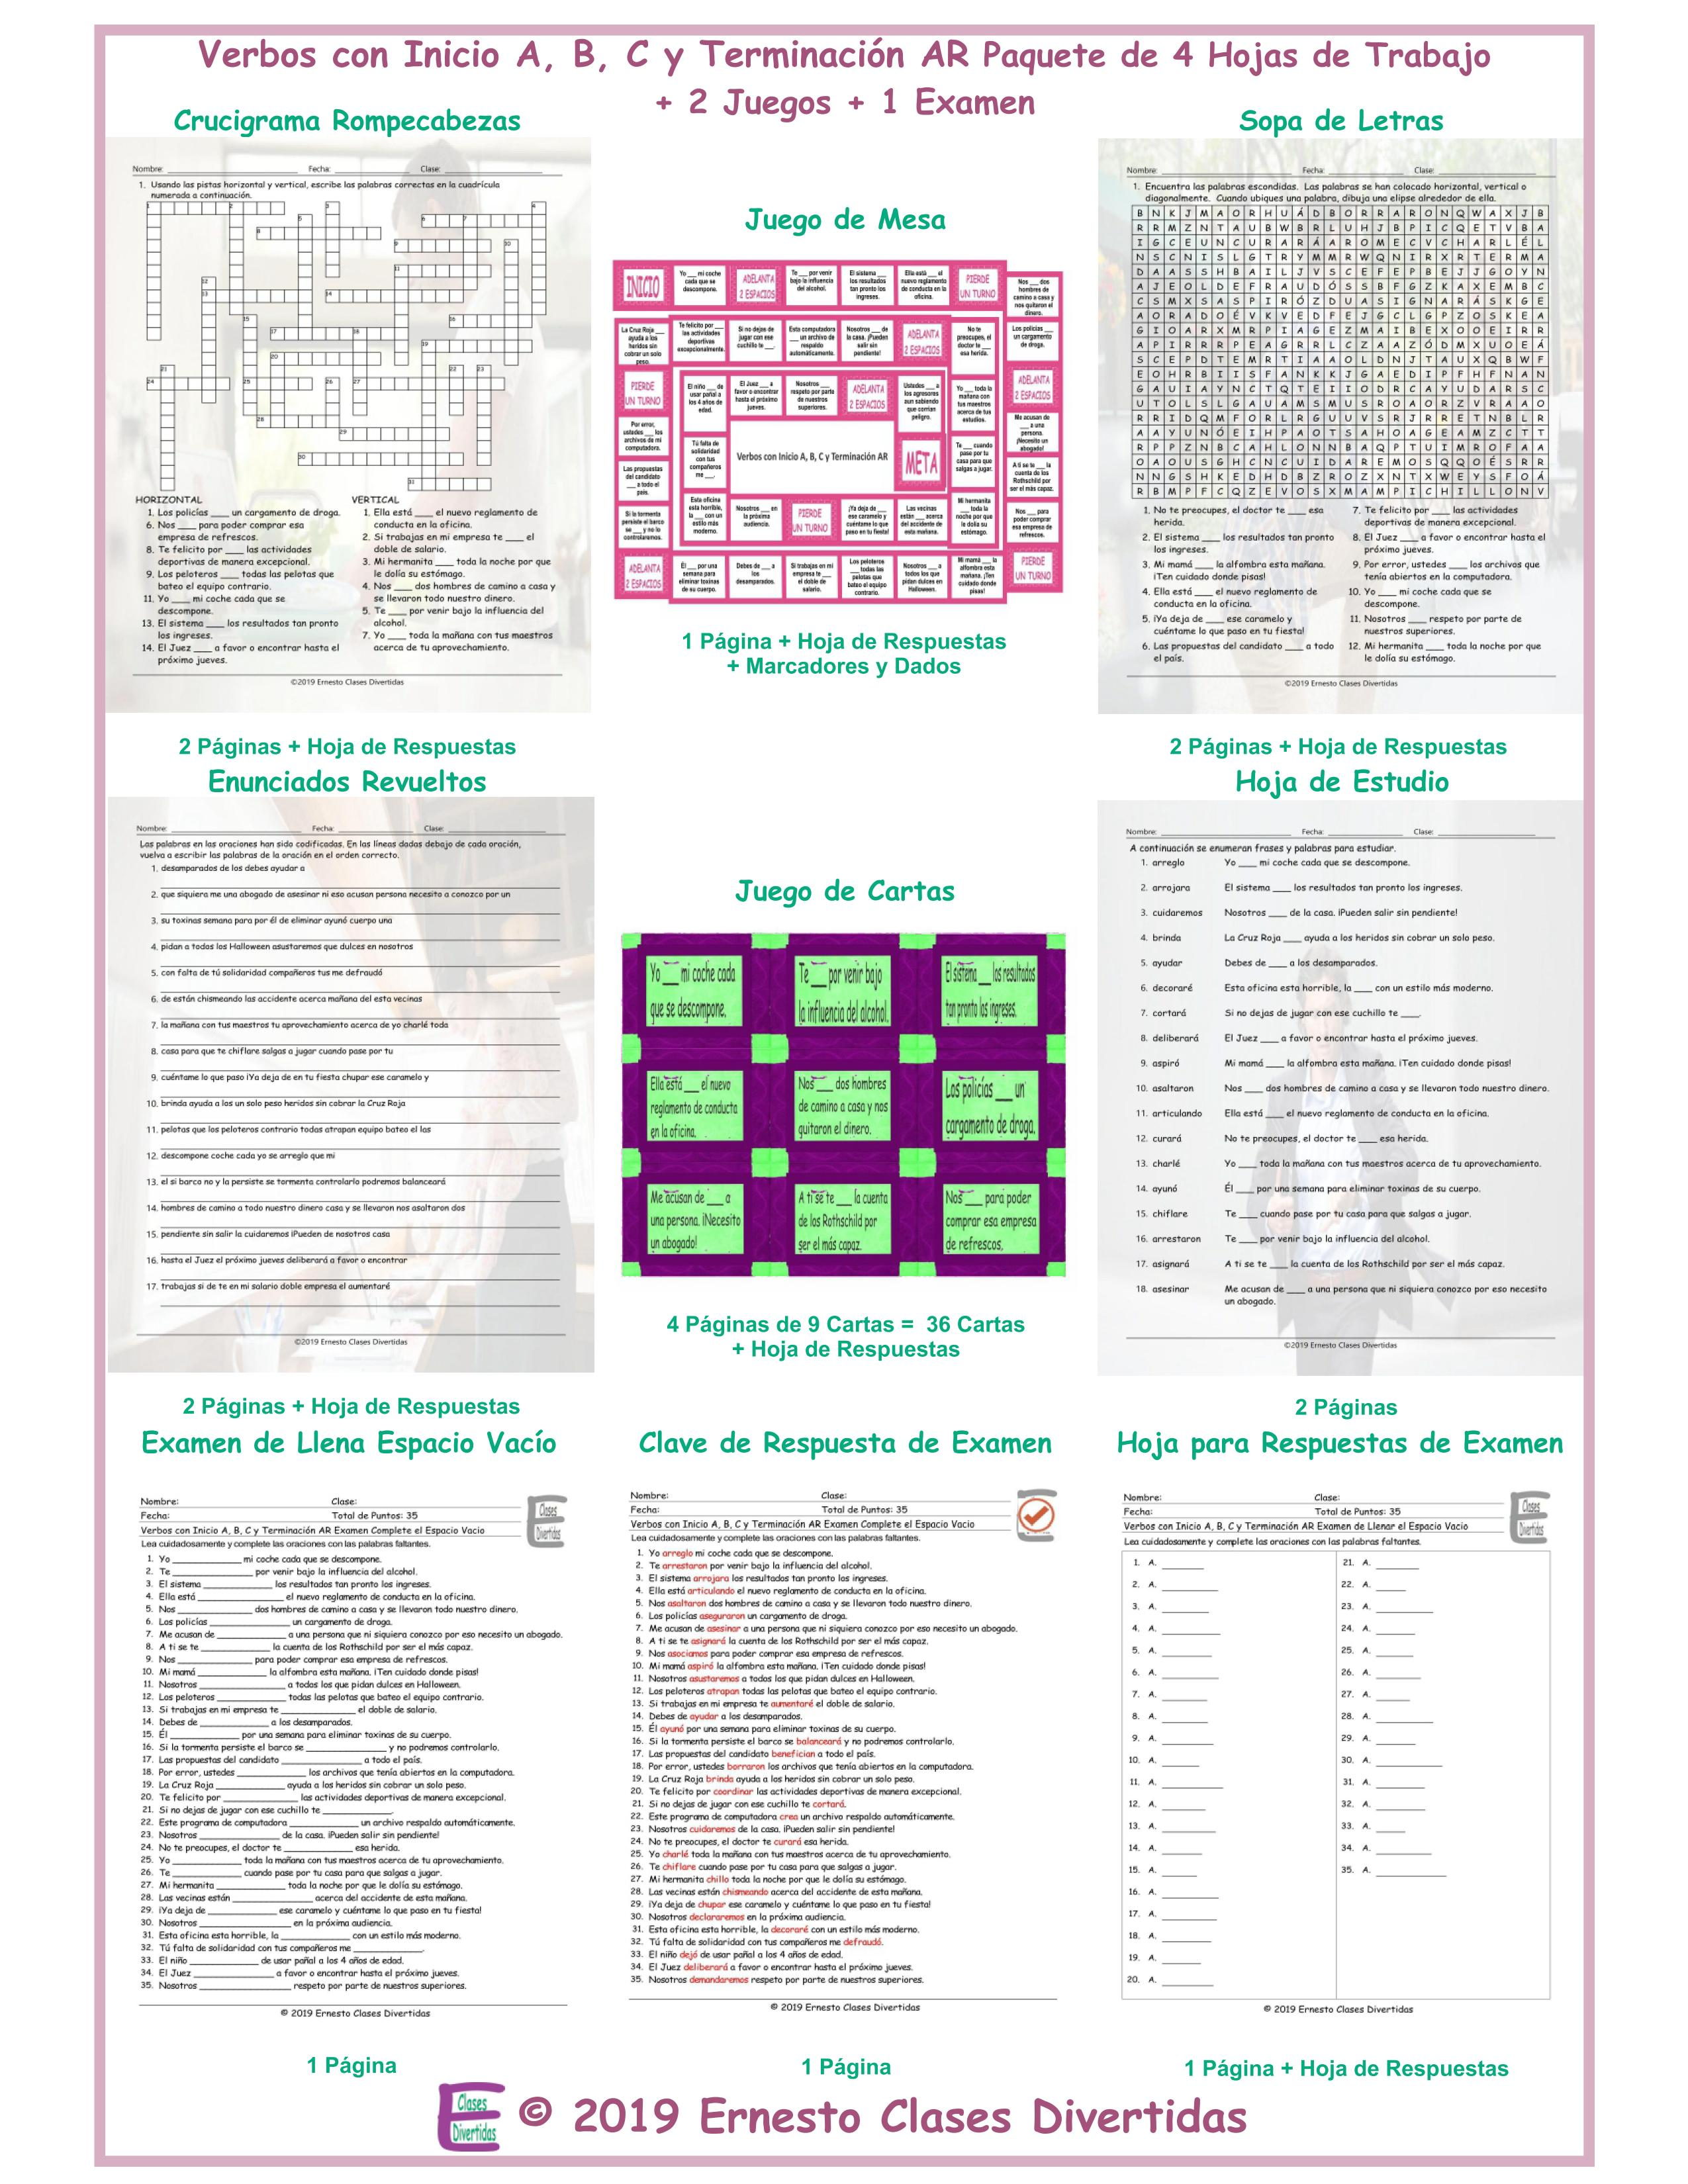 Verbs Start A, B, C, D End AR Spanish 4 Worksheet-2 Game-1 Exam Bundle